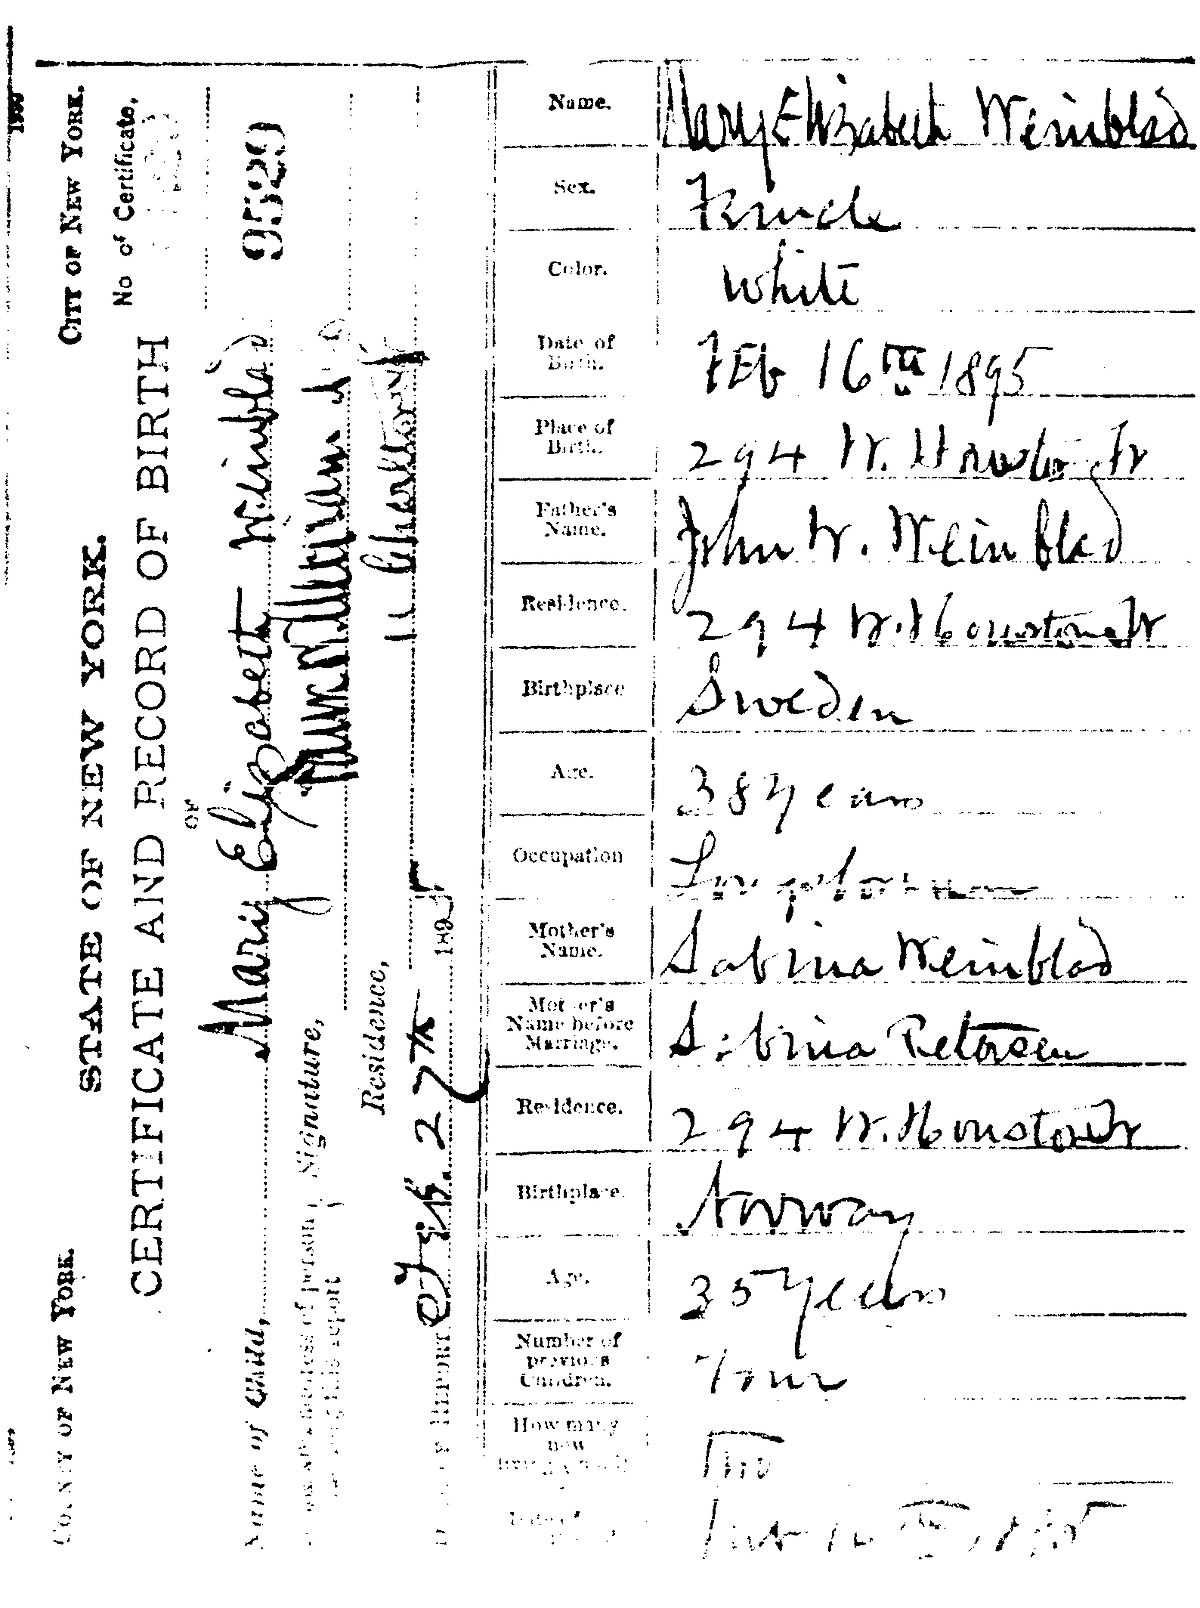 Birth Certificate Wikipedia